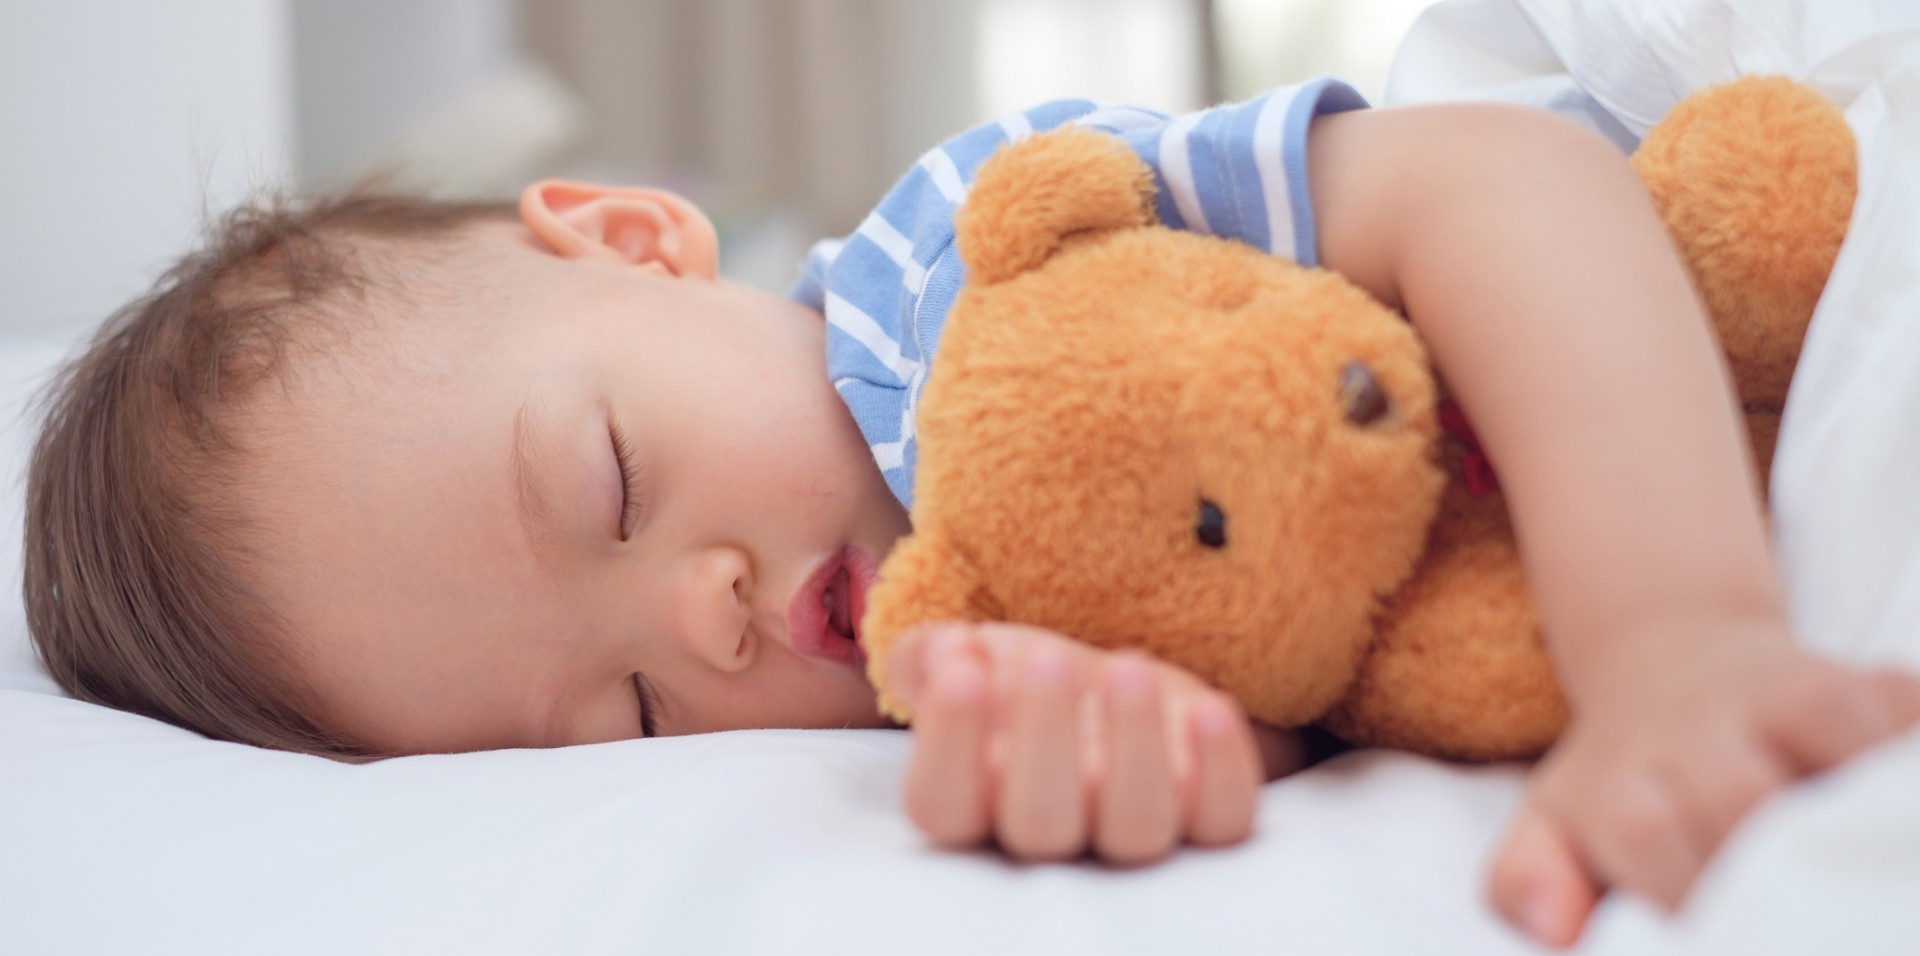 U of A researchers have found that infants who regularly sleep less than 12 hours total over any given 24-hour period have poorer cognitive and language development at two years of age than infants who get more sleep.